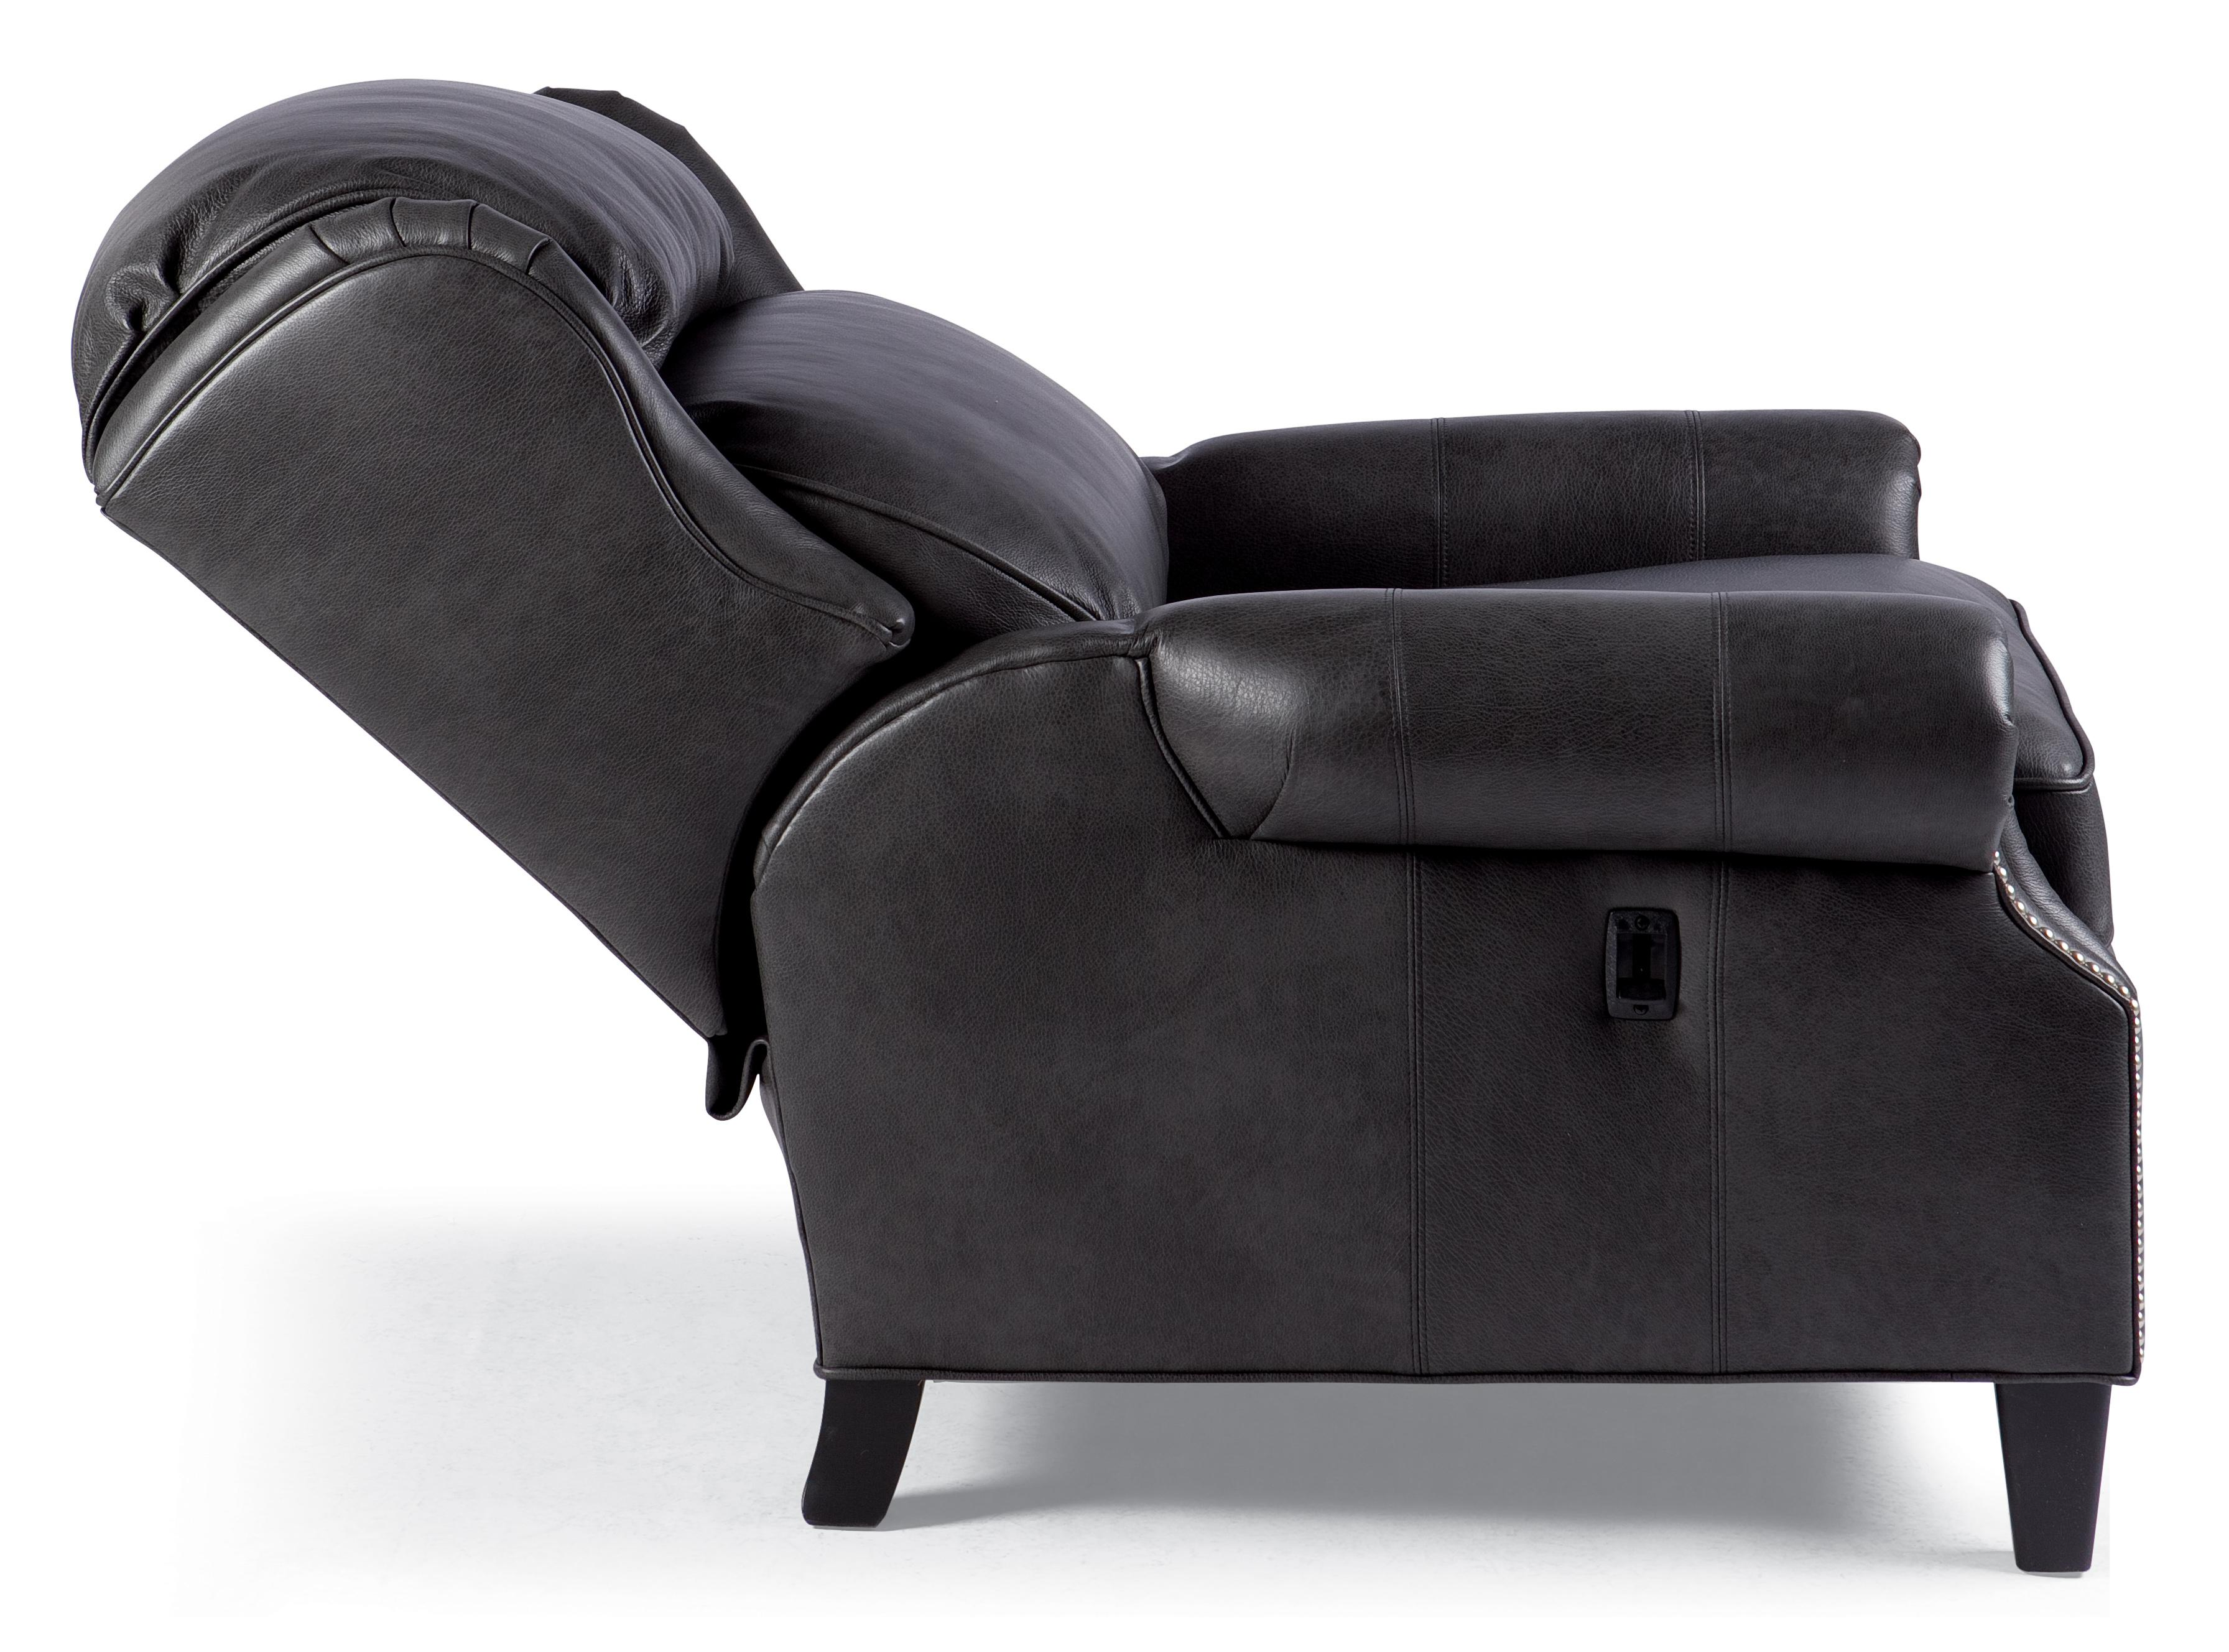 Big Tall Motorized Reclining Chair with Nailhead Trim by Smith